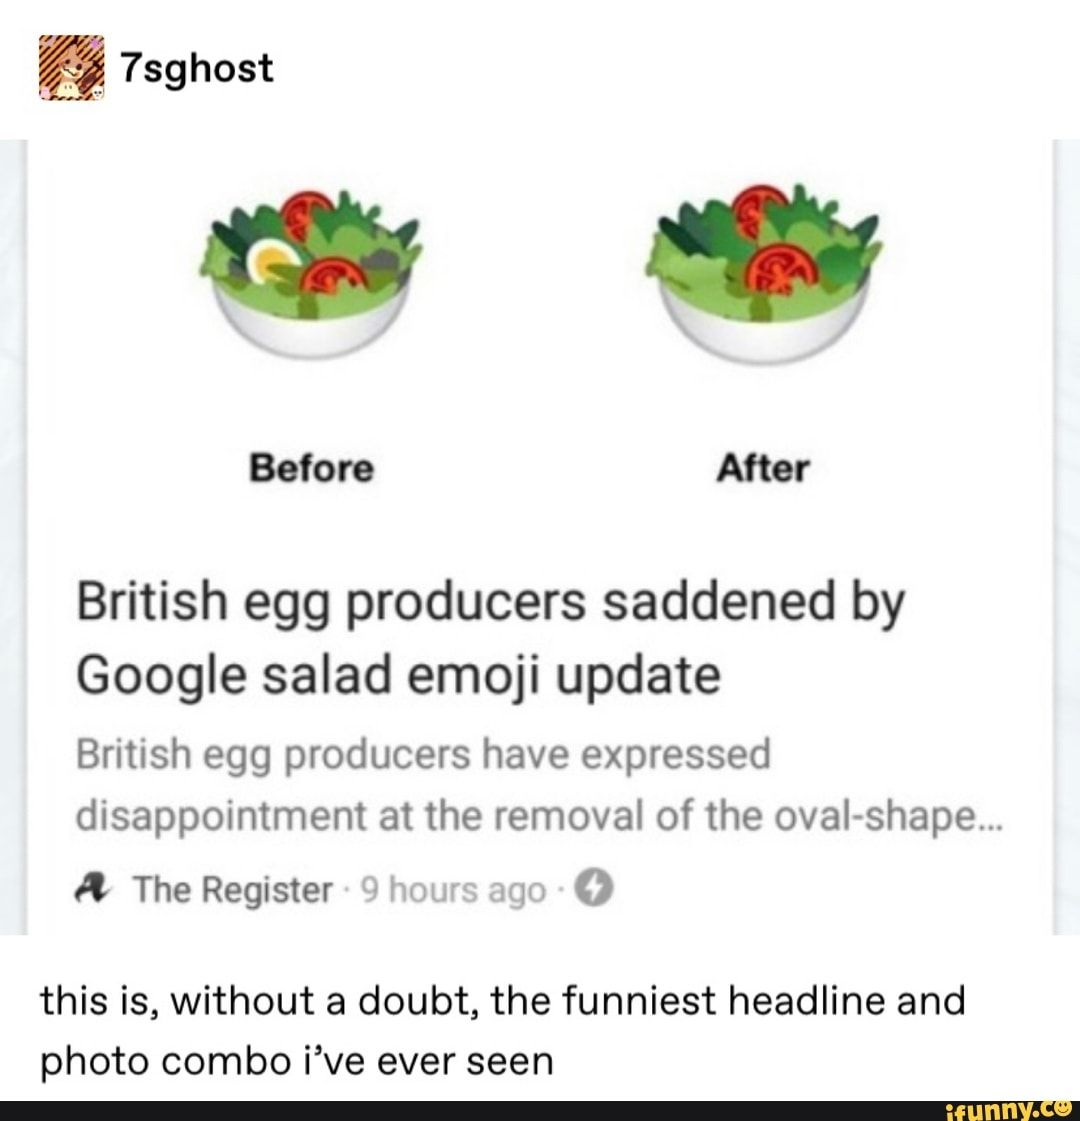 British Egg Producers Saddened By Google Salad Emoji Update British Egg Producers Have Expressed Disappointment At The Removal Of The Ovai Shape ª The Regist Funny Headlines Memes Funny Tumblr Posts